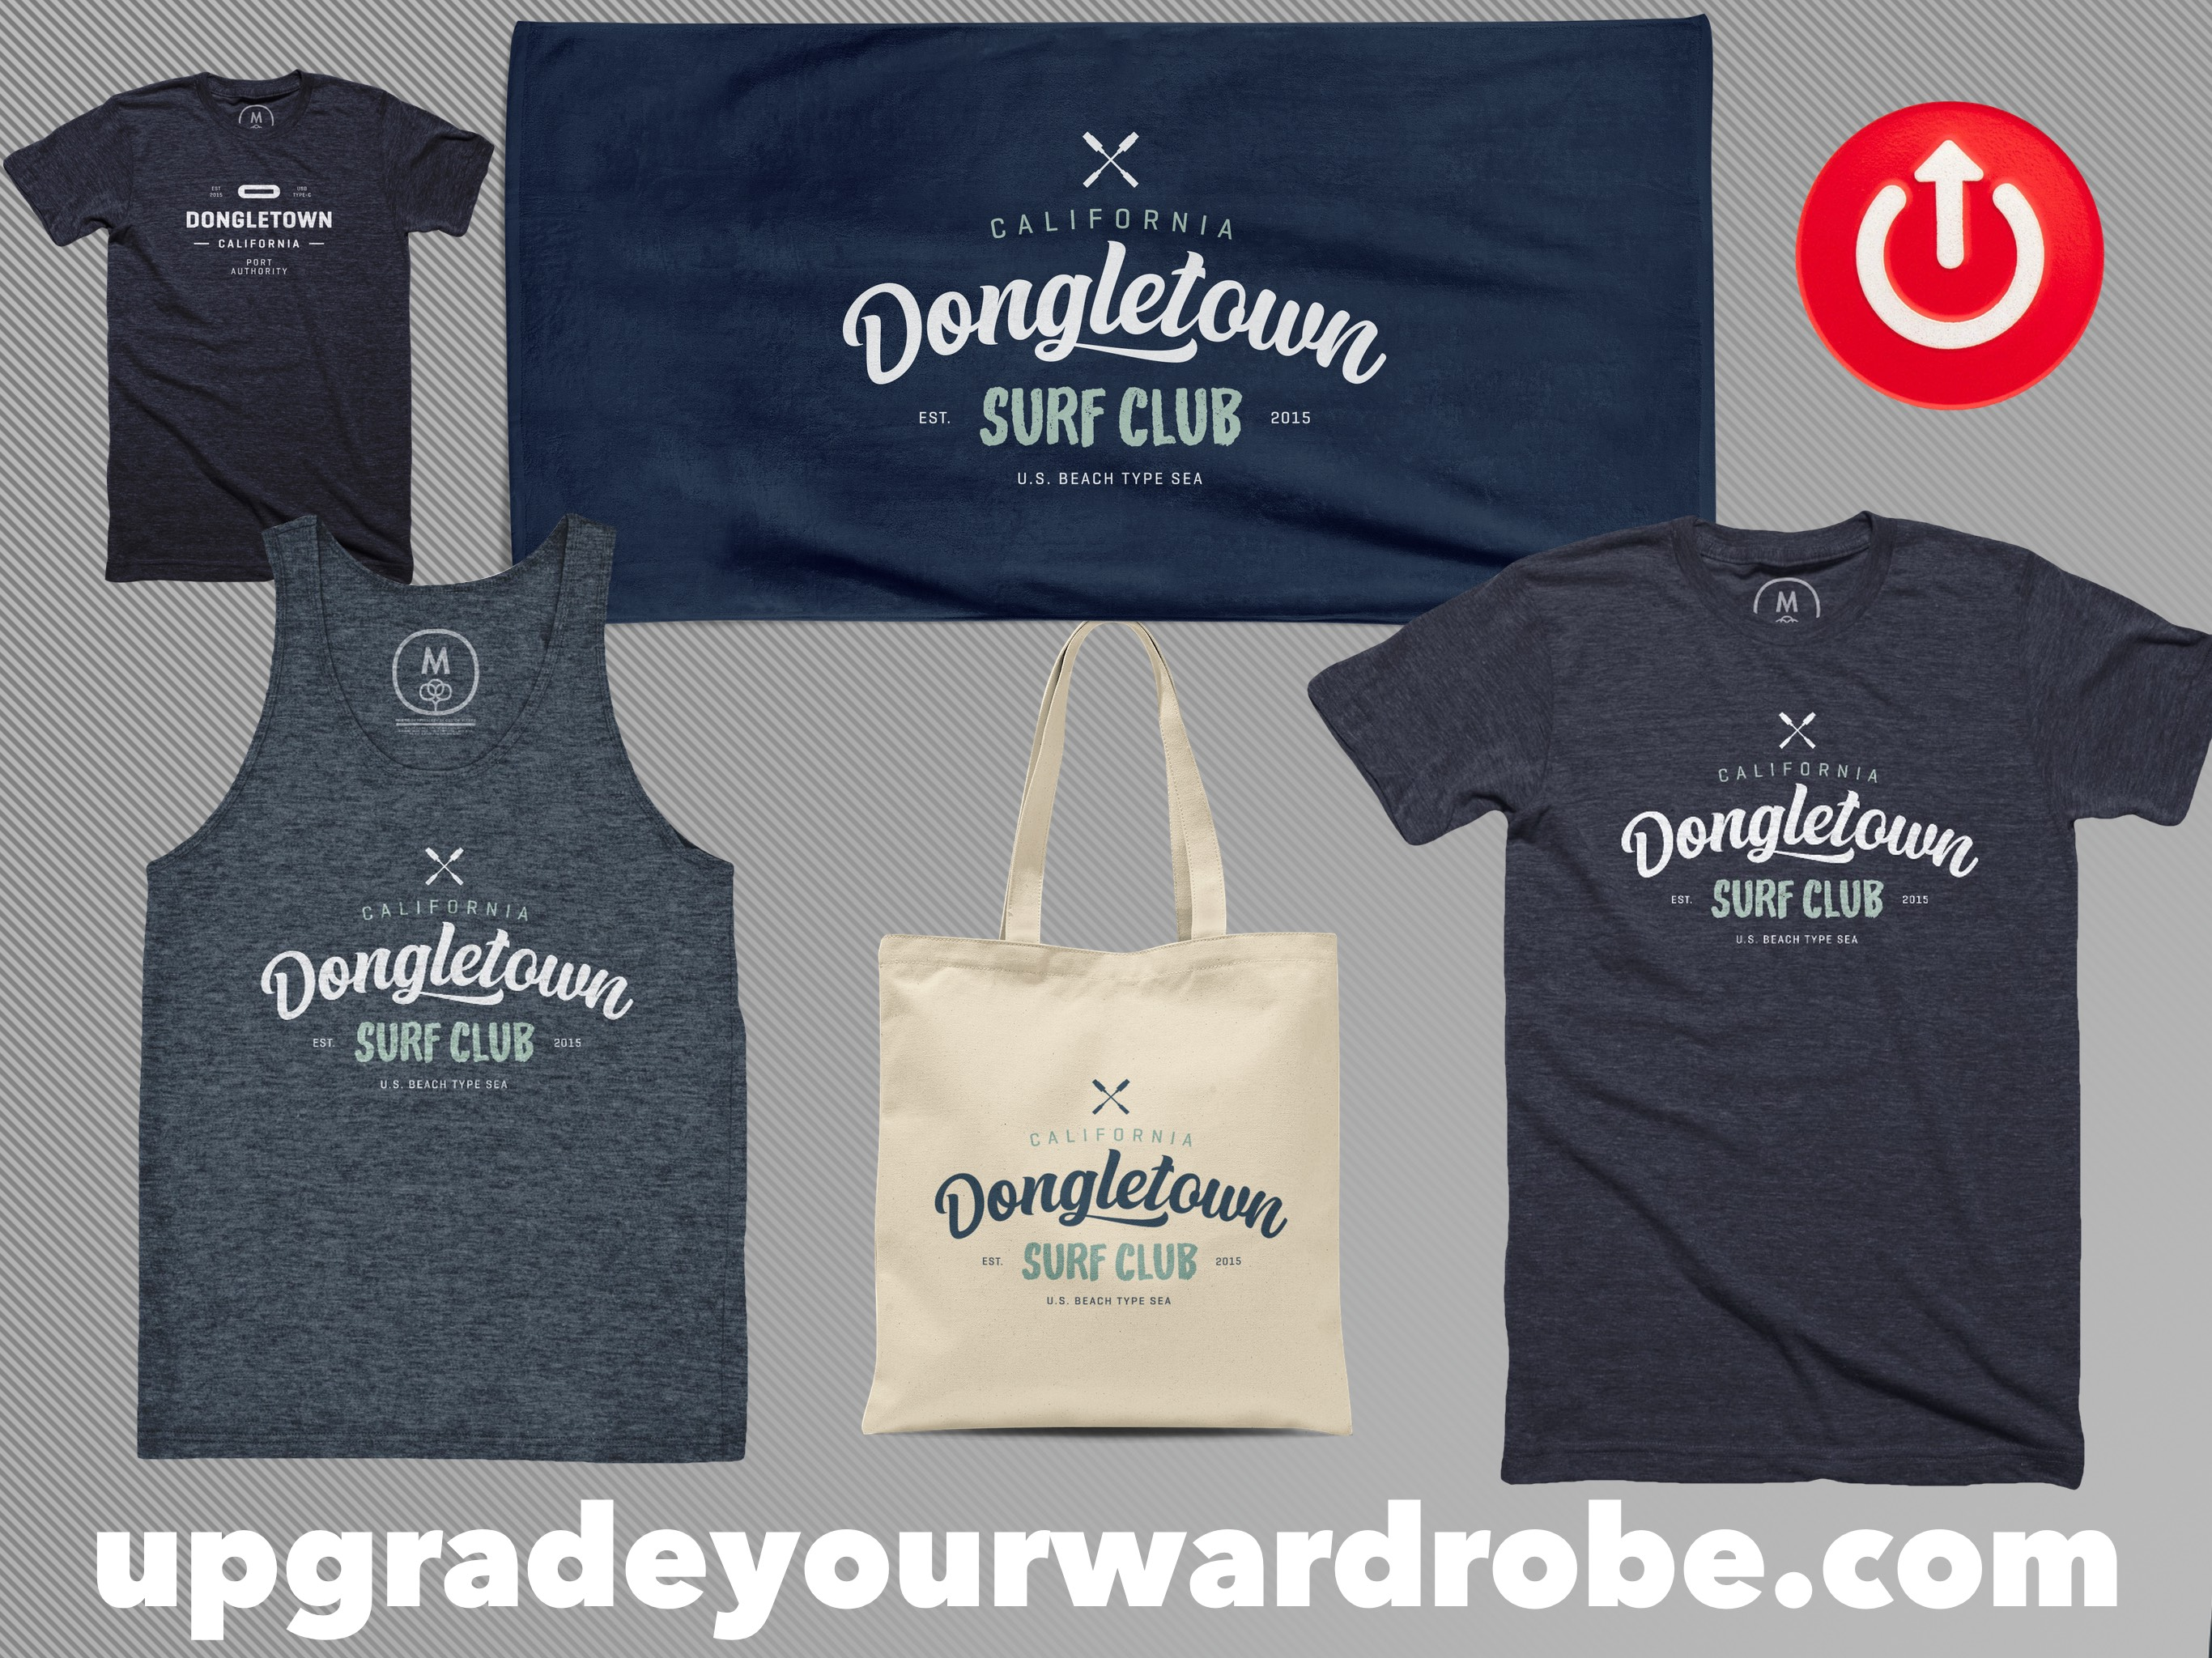 Dongletown Surf Club Merch!